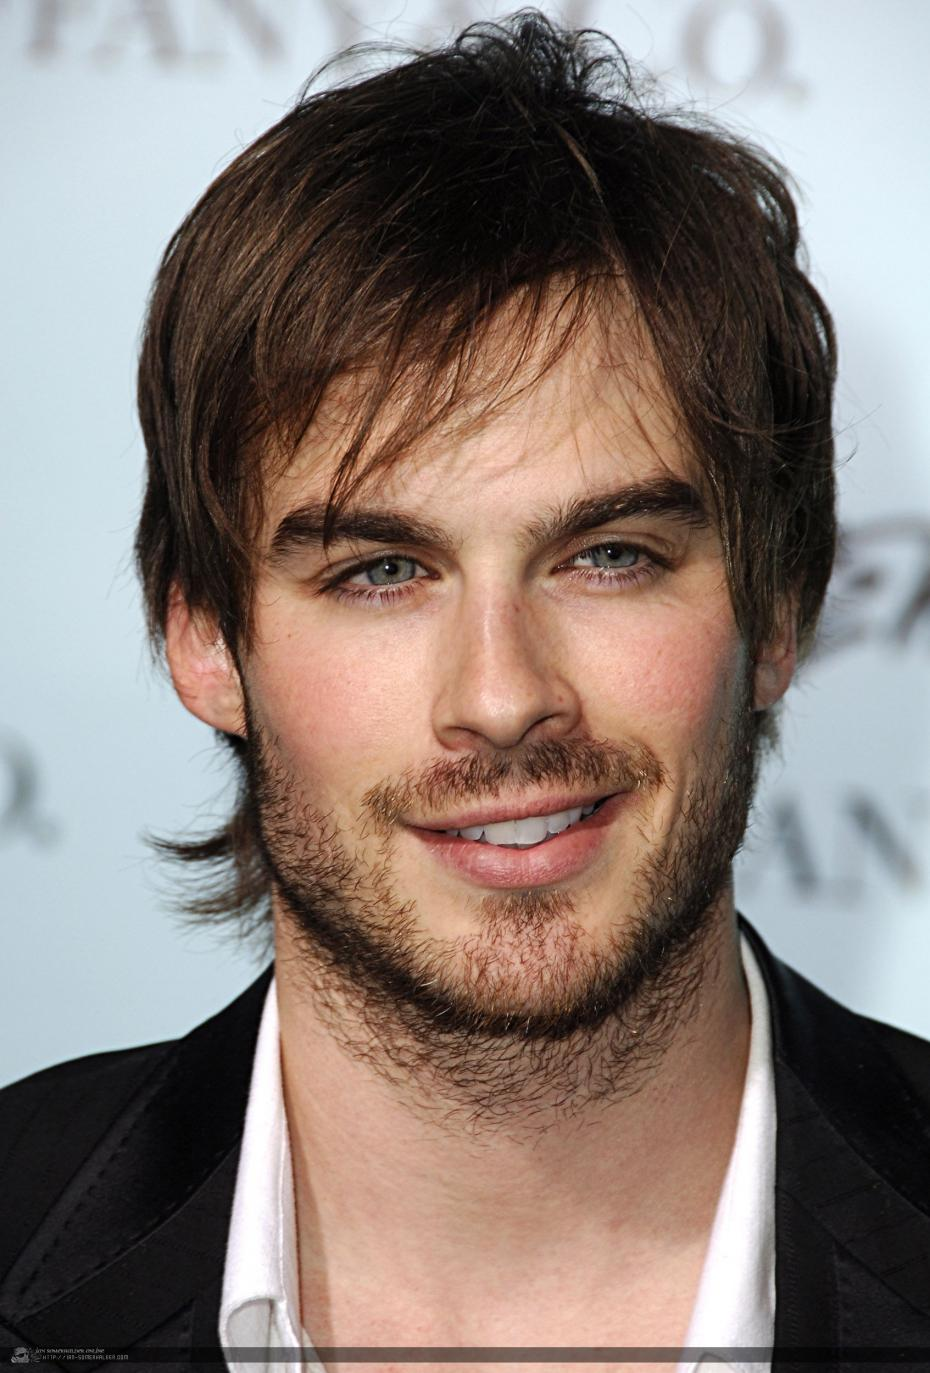 Actor Ian Somerhalder - age: 39